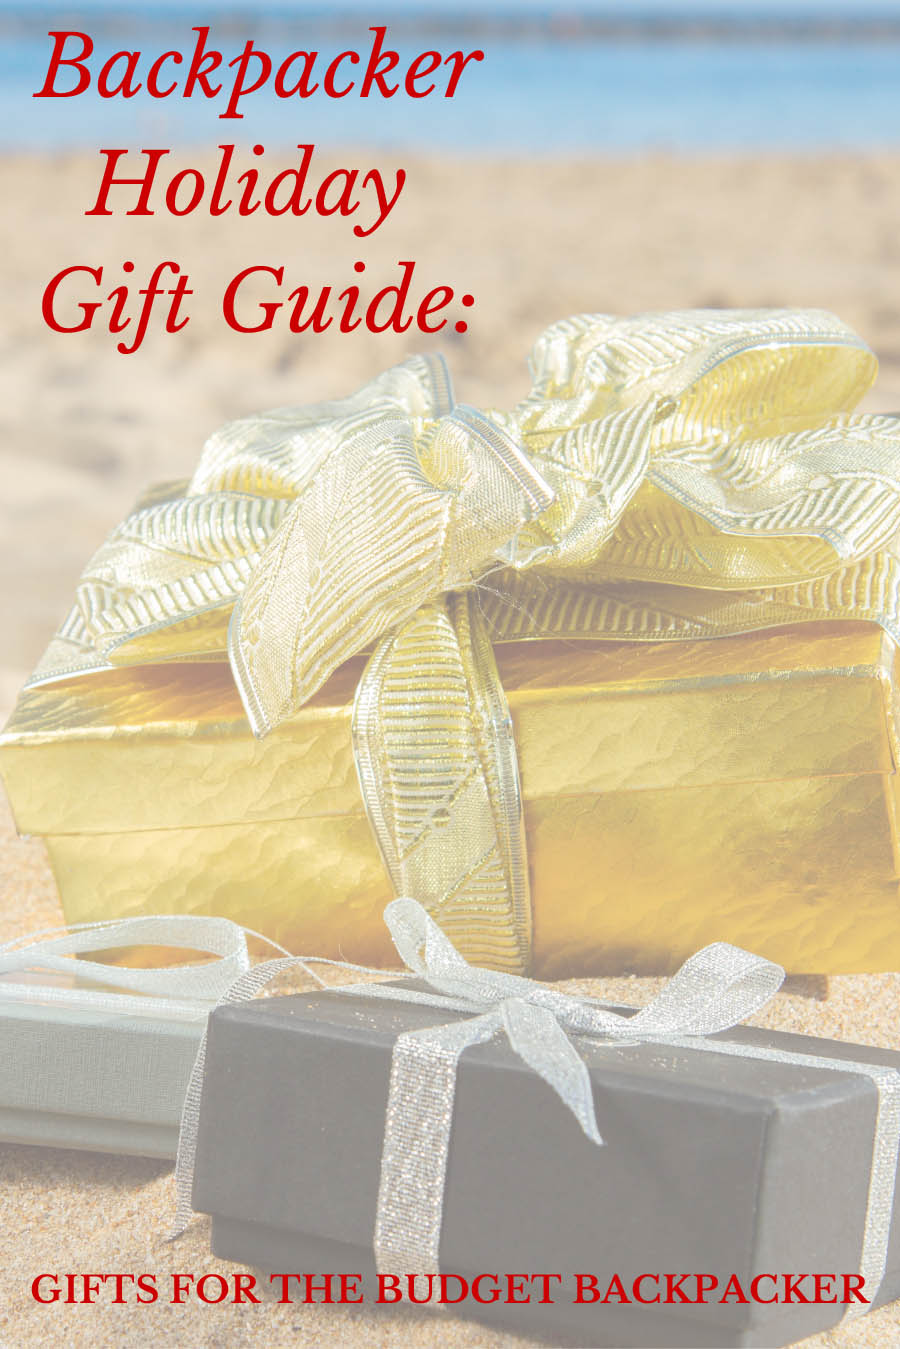 Backpacker Holiday Gift Guide: Gifts for the Budget Backpacker